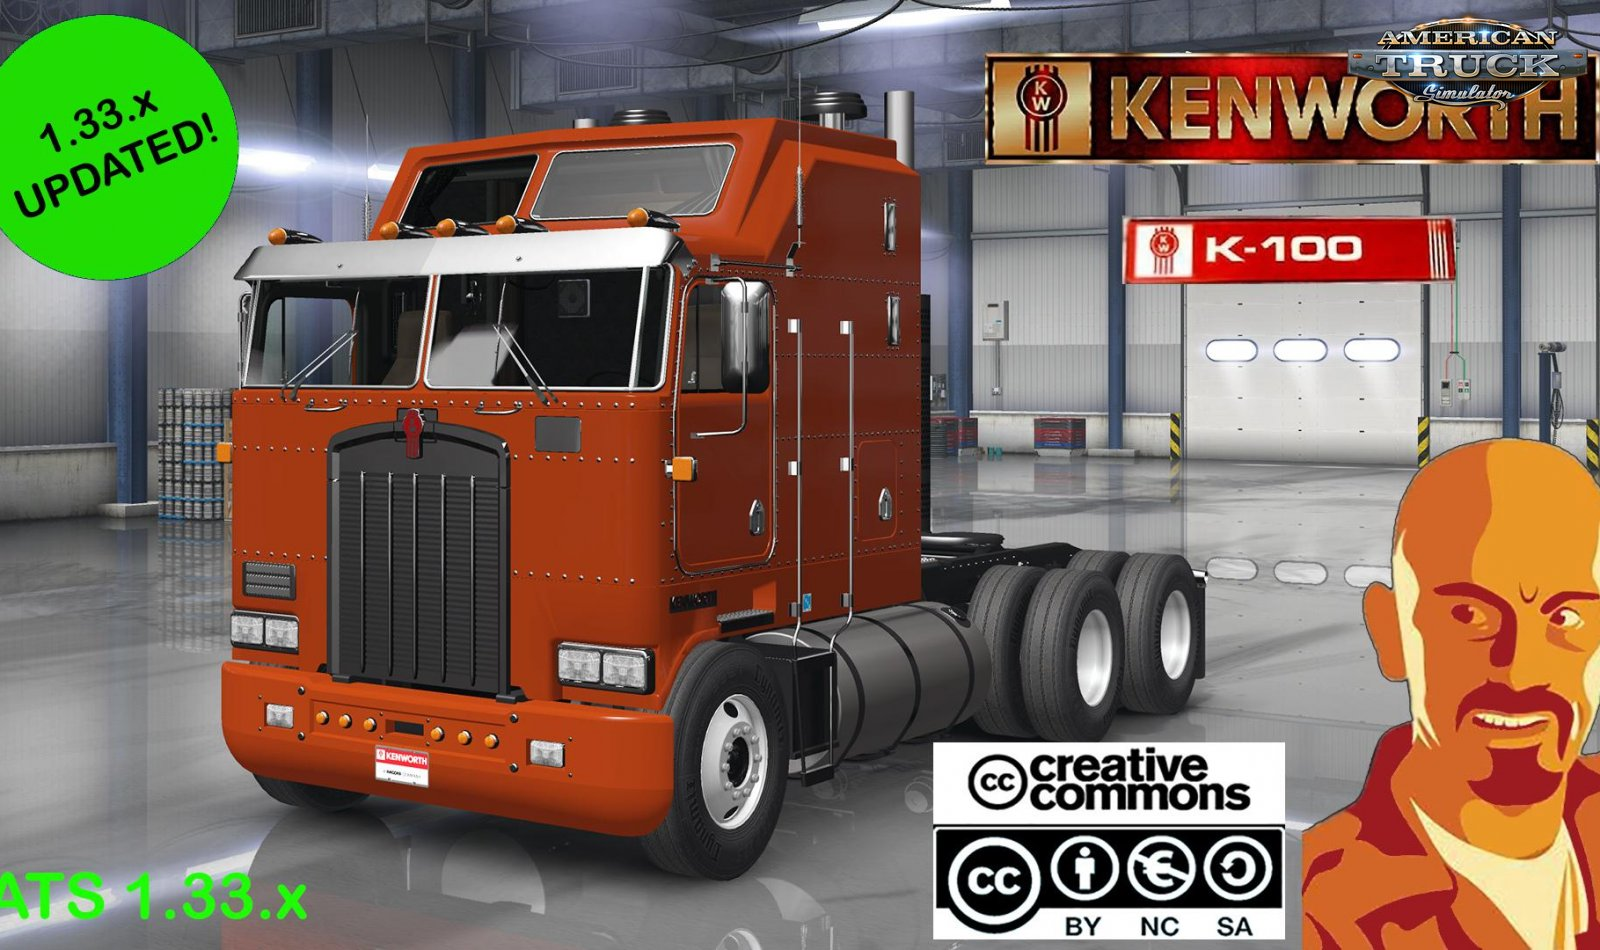 Kenworth K100 + Interior v1.0 by CyrusTheVirus (v1.33.x)